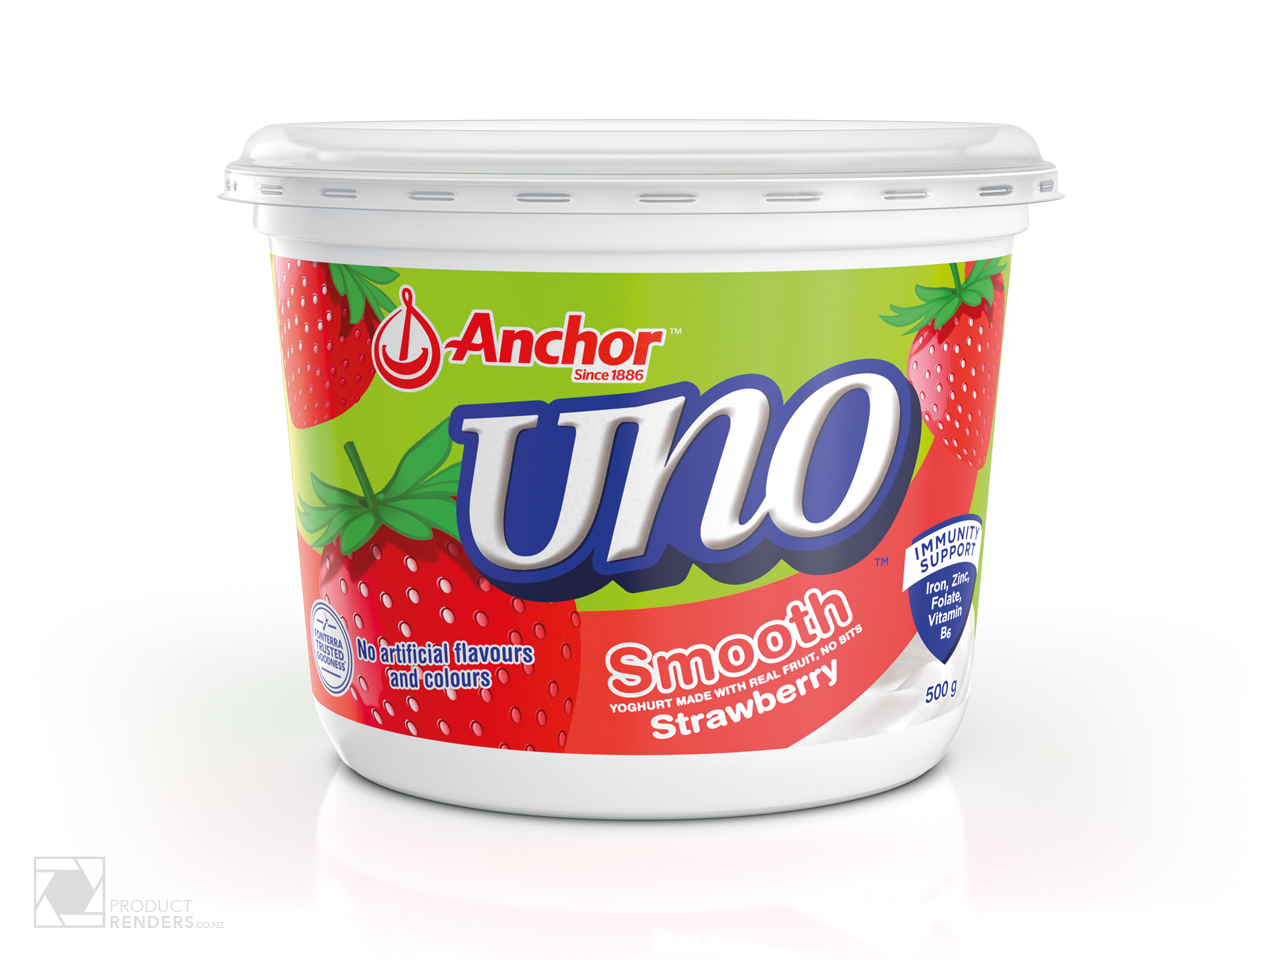 3D render of an Anchor Uno Strawberry yoghurt tub packaging.